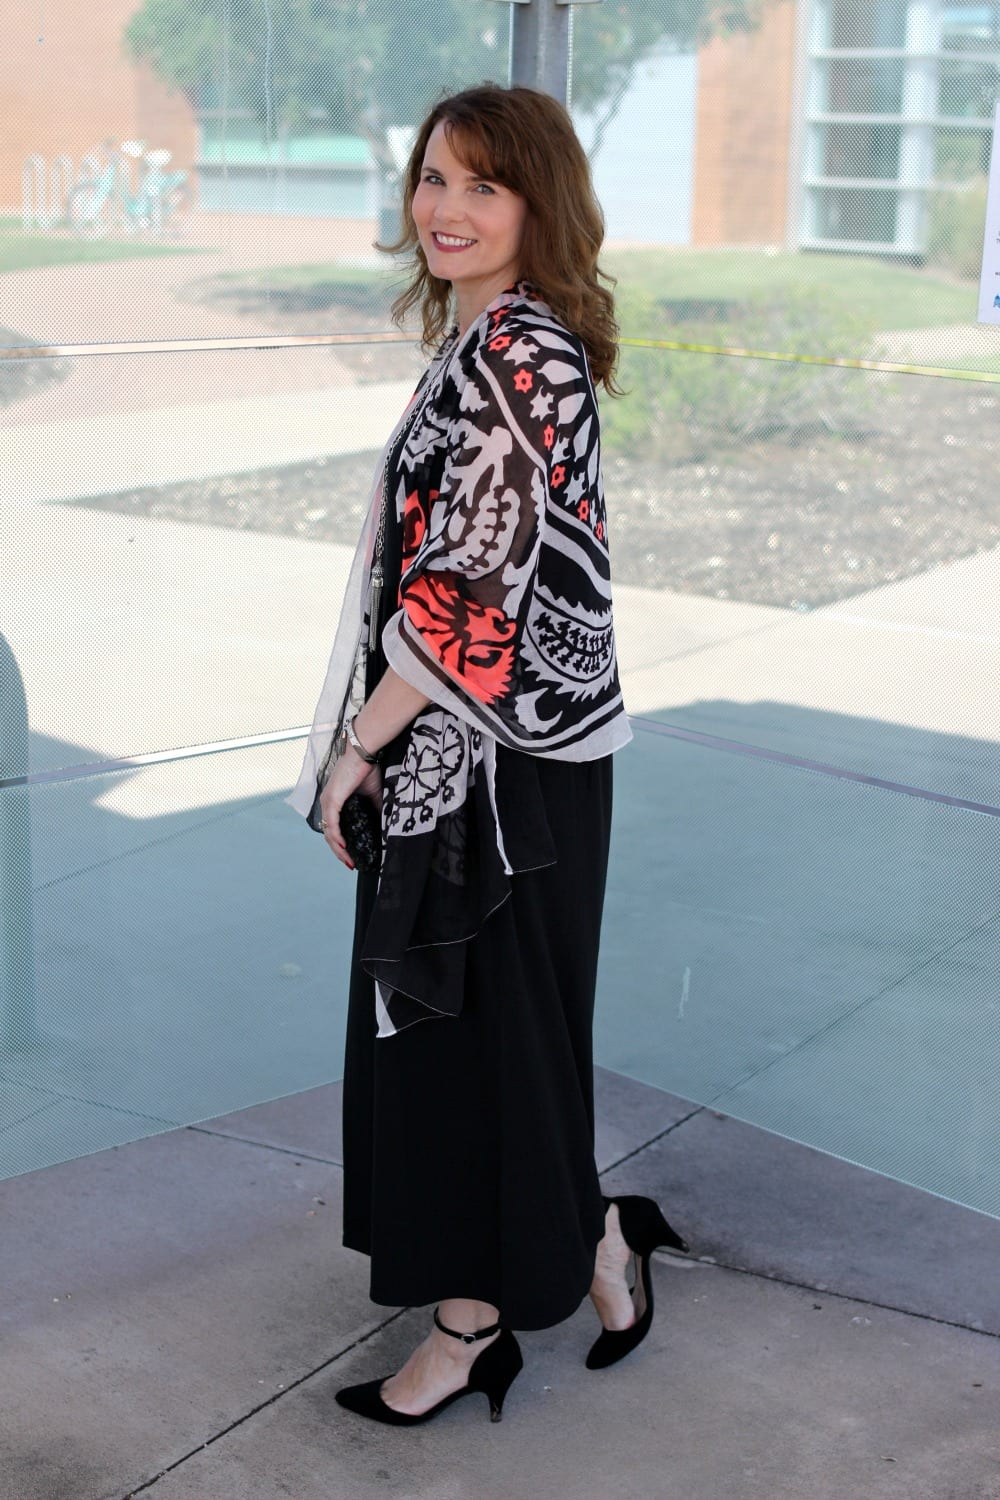 Looking for black maxi dress outfit ideas? Here are two ways to wear one: dressed up and down. This is the perfect versatile dress for summer and even into early fall.